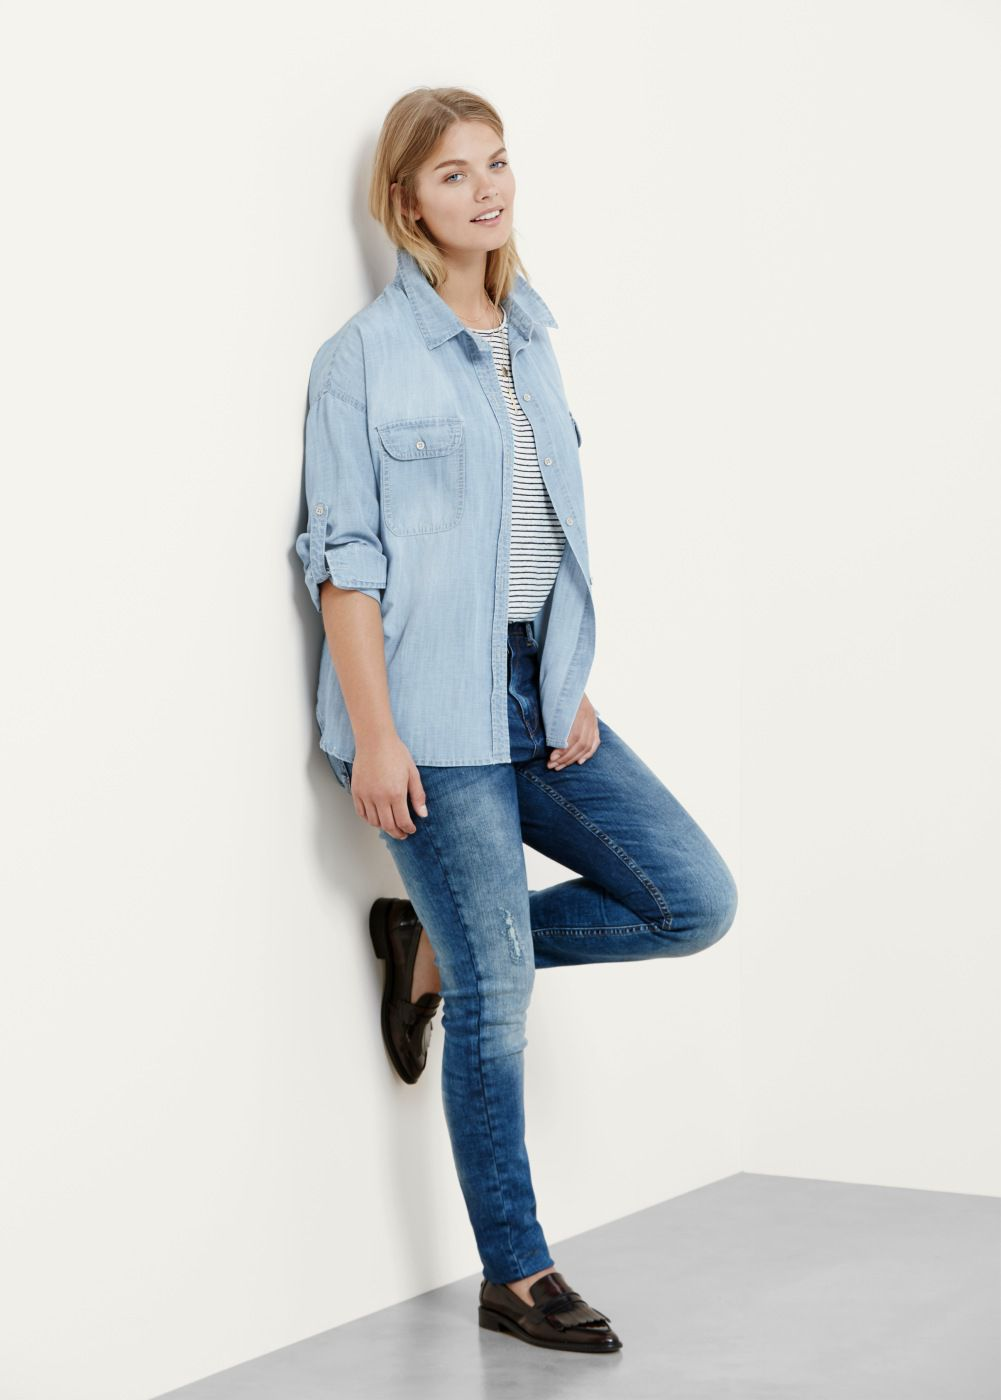 2084c79a441 How to Wear Skinny Jeans if You re Plus Size